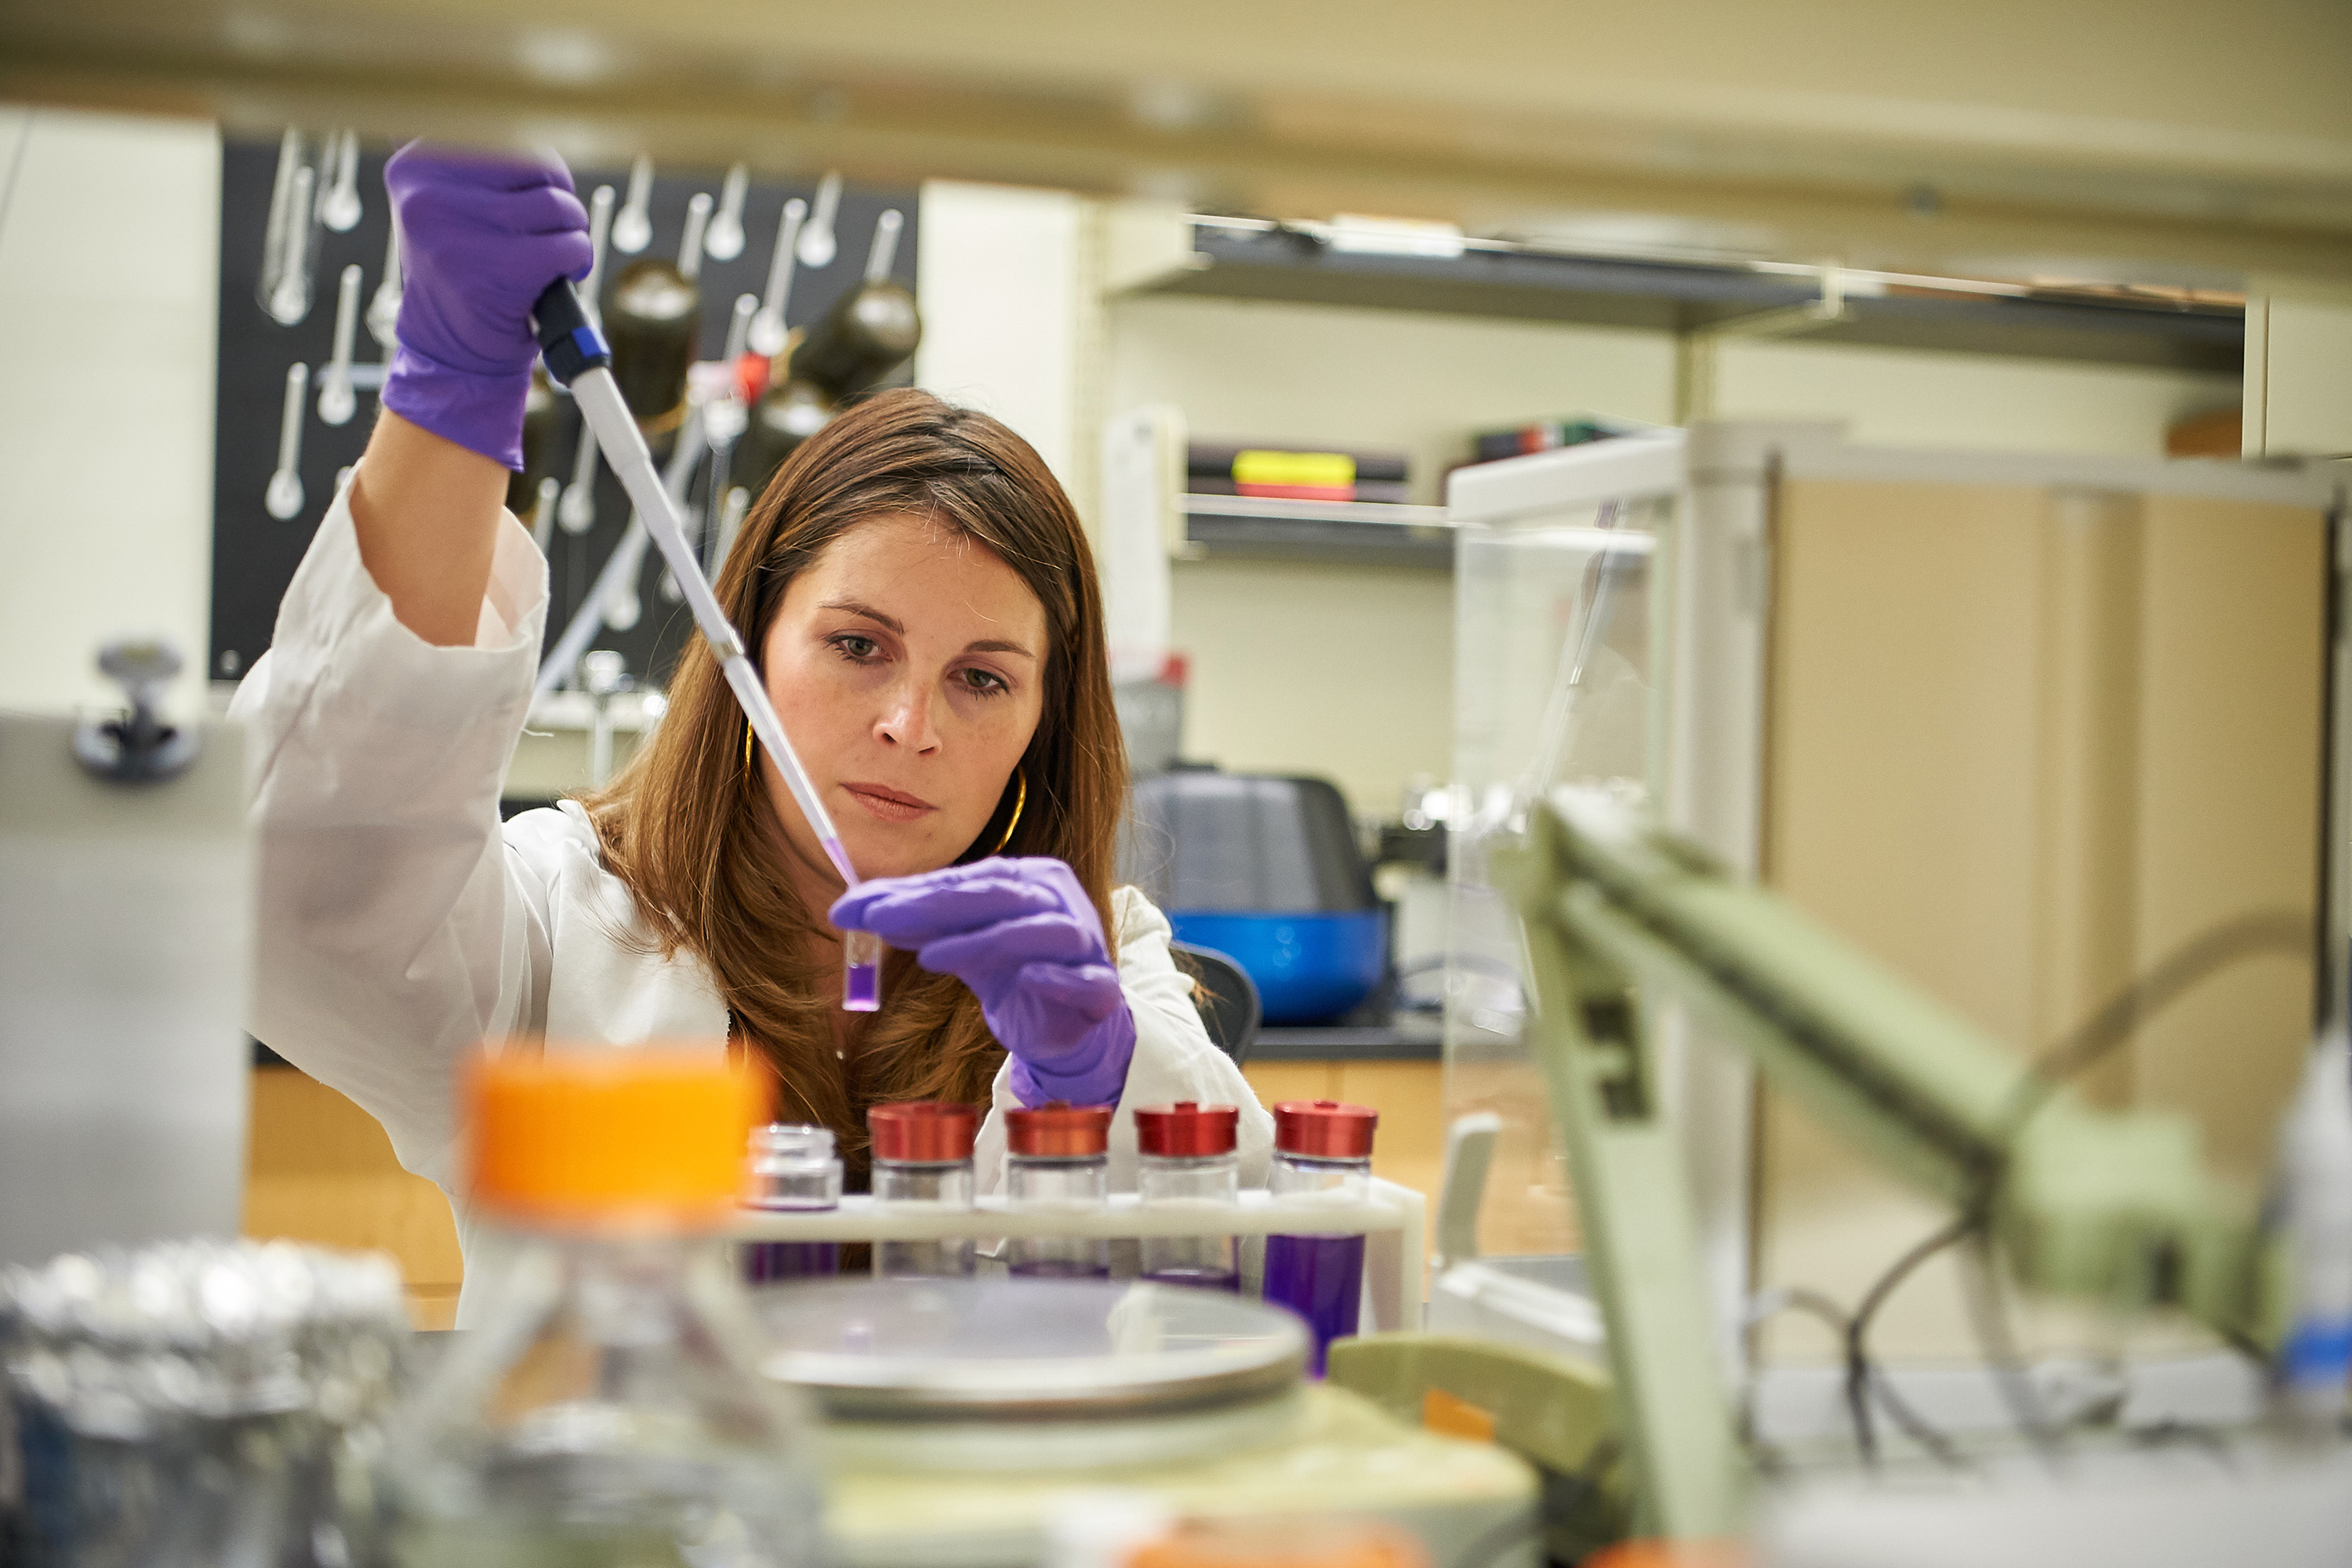 Nicole Wagner, CEO of UConn TIP company LambdaVision, works in the lab at the Cell and Genome Sciences Building in Farmington. (Peter Morenus/UConn Photo)